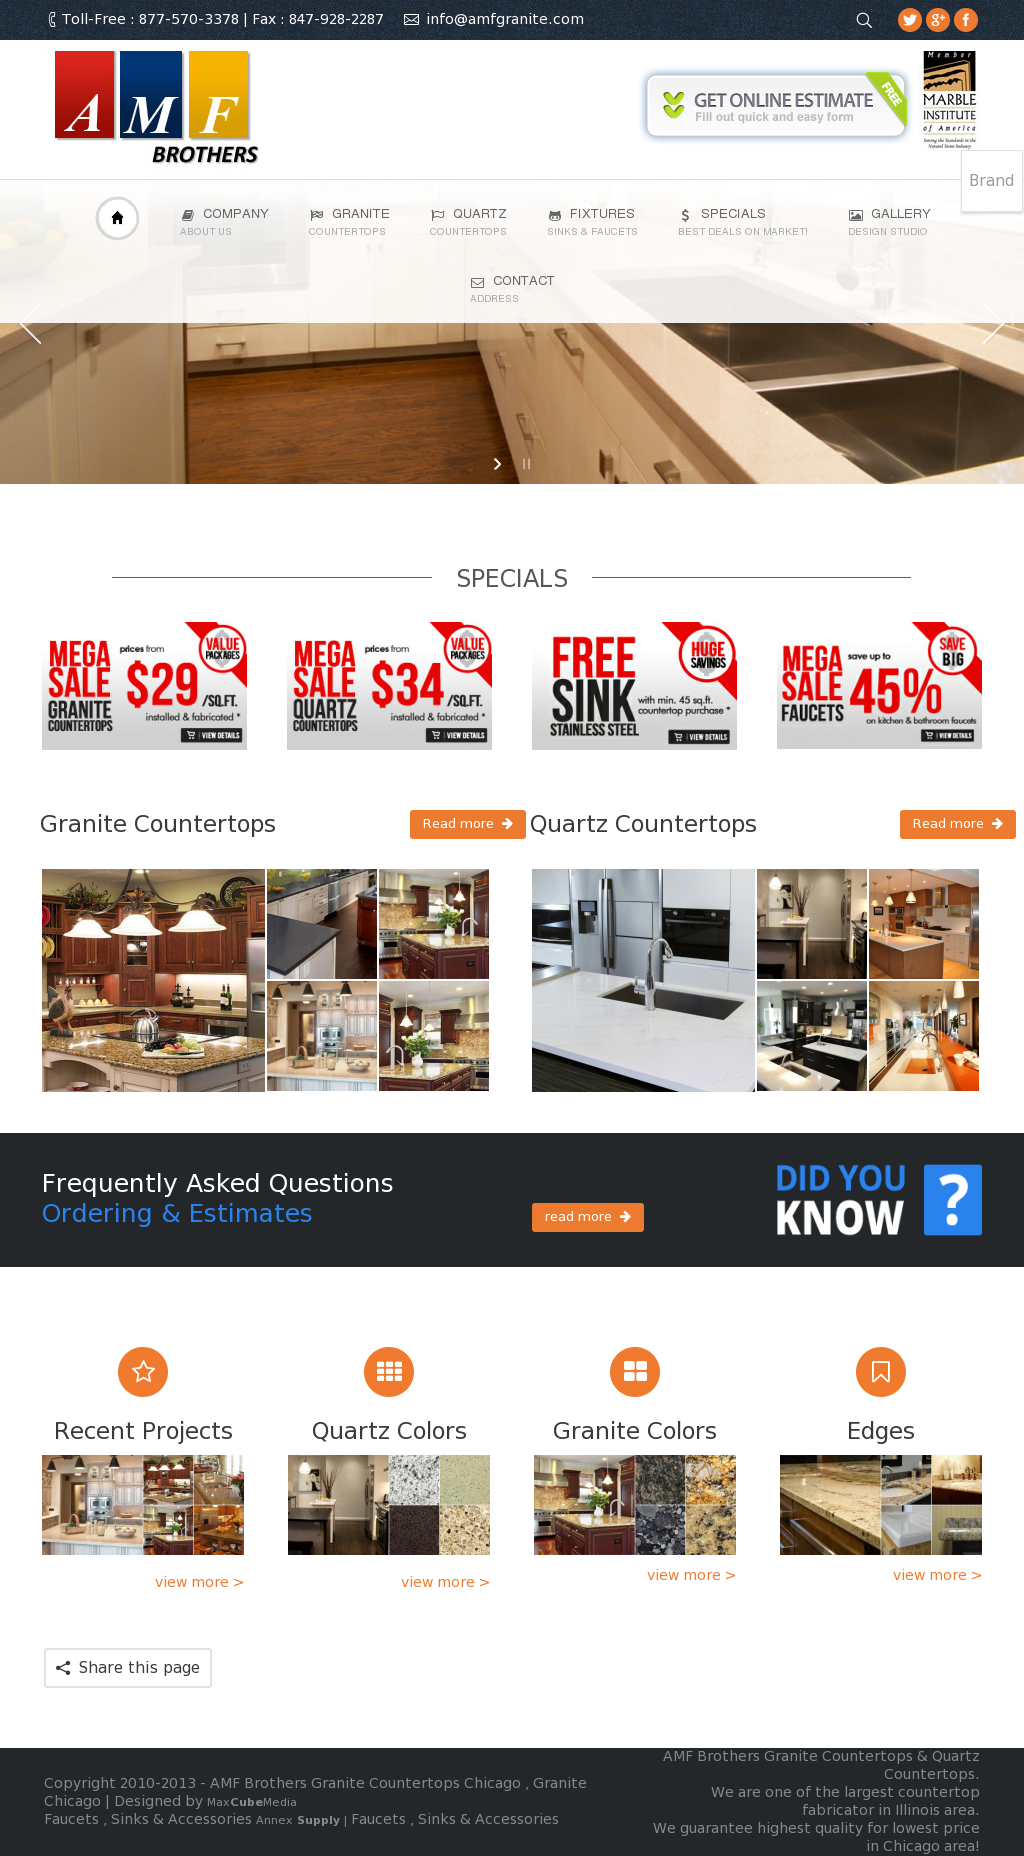 Amf Brothers Granite Countertops Chicago Website History